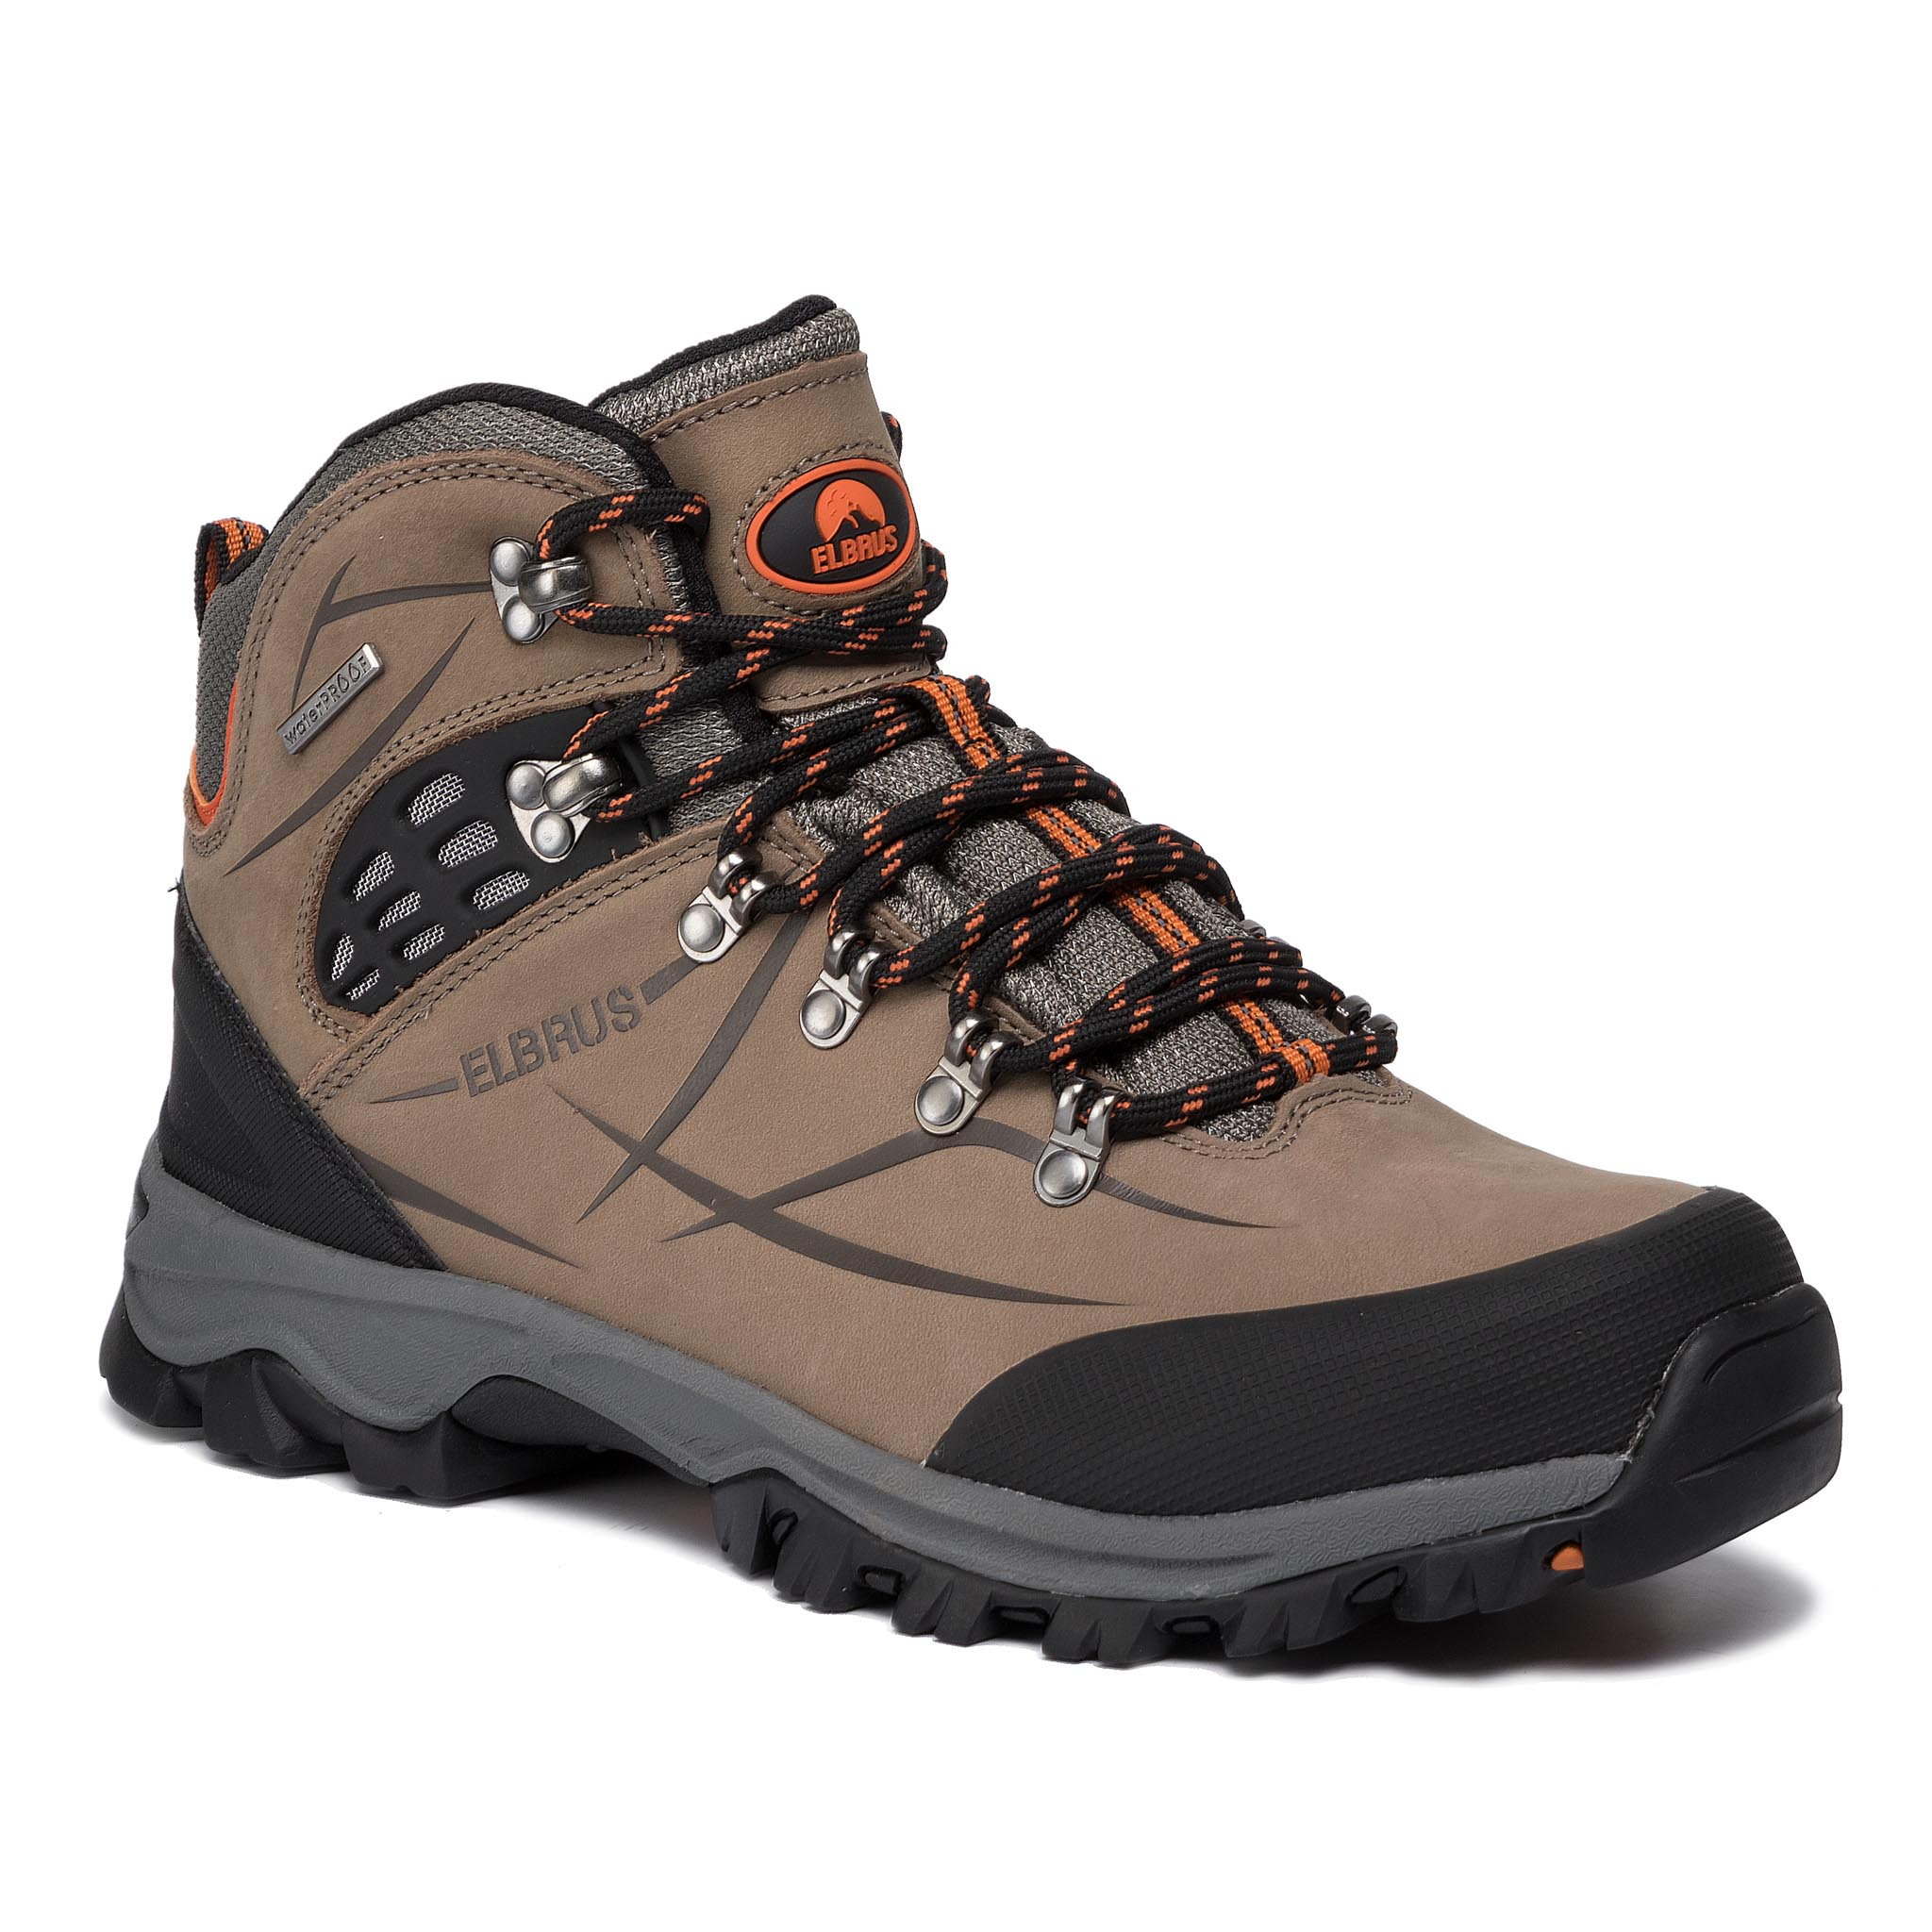 Trekkings ELBRUS - Mandoza Mid Wp Clay/Middle Grey/Orange